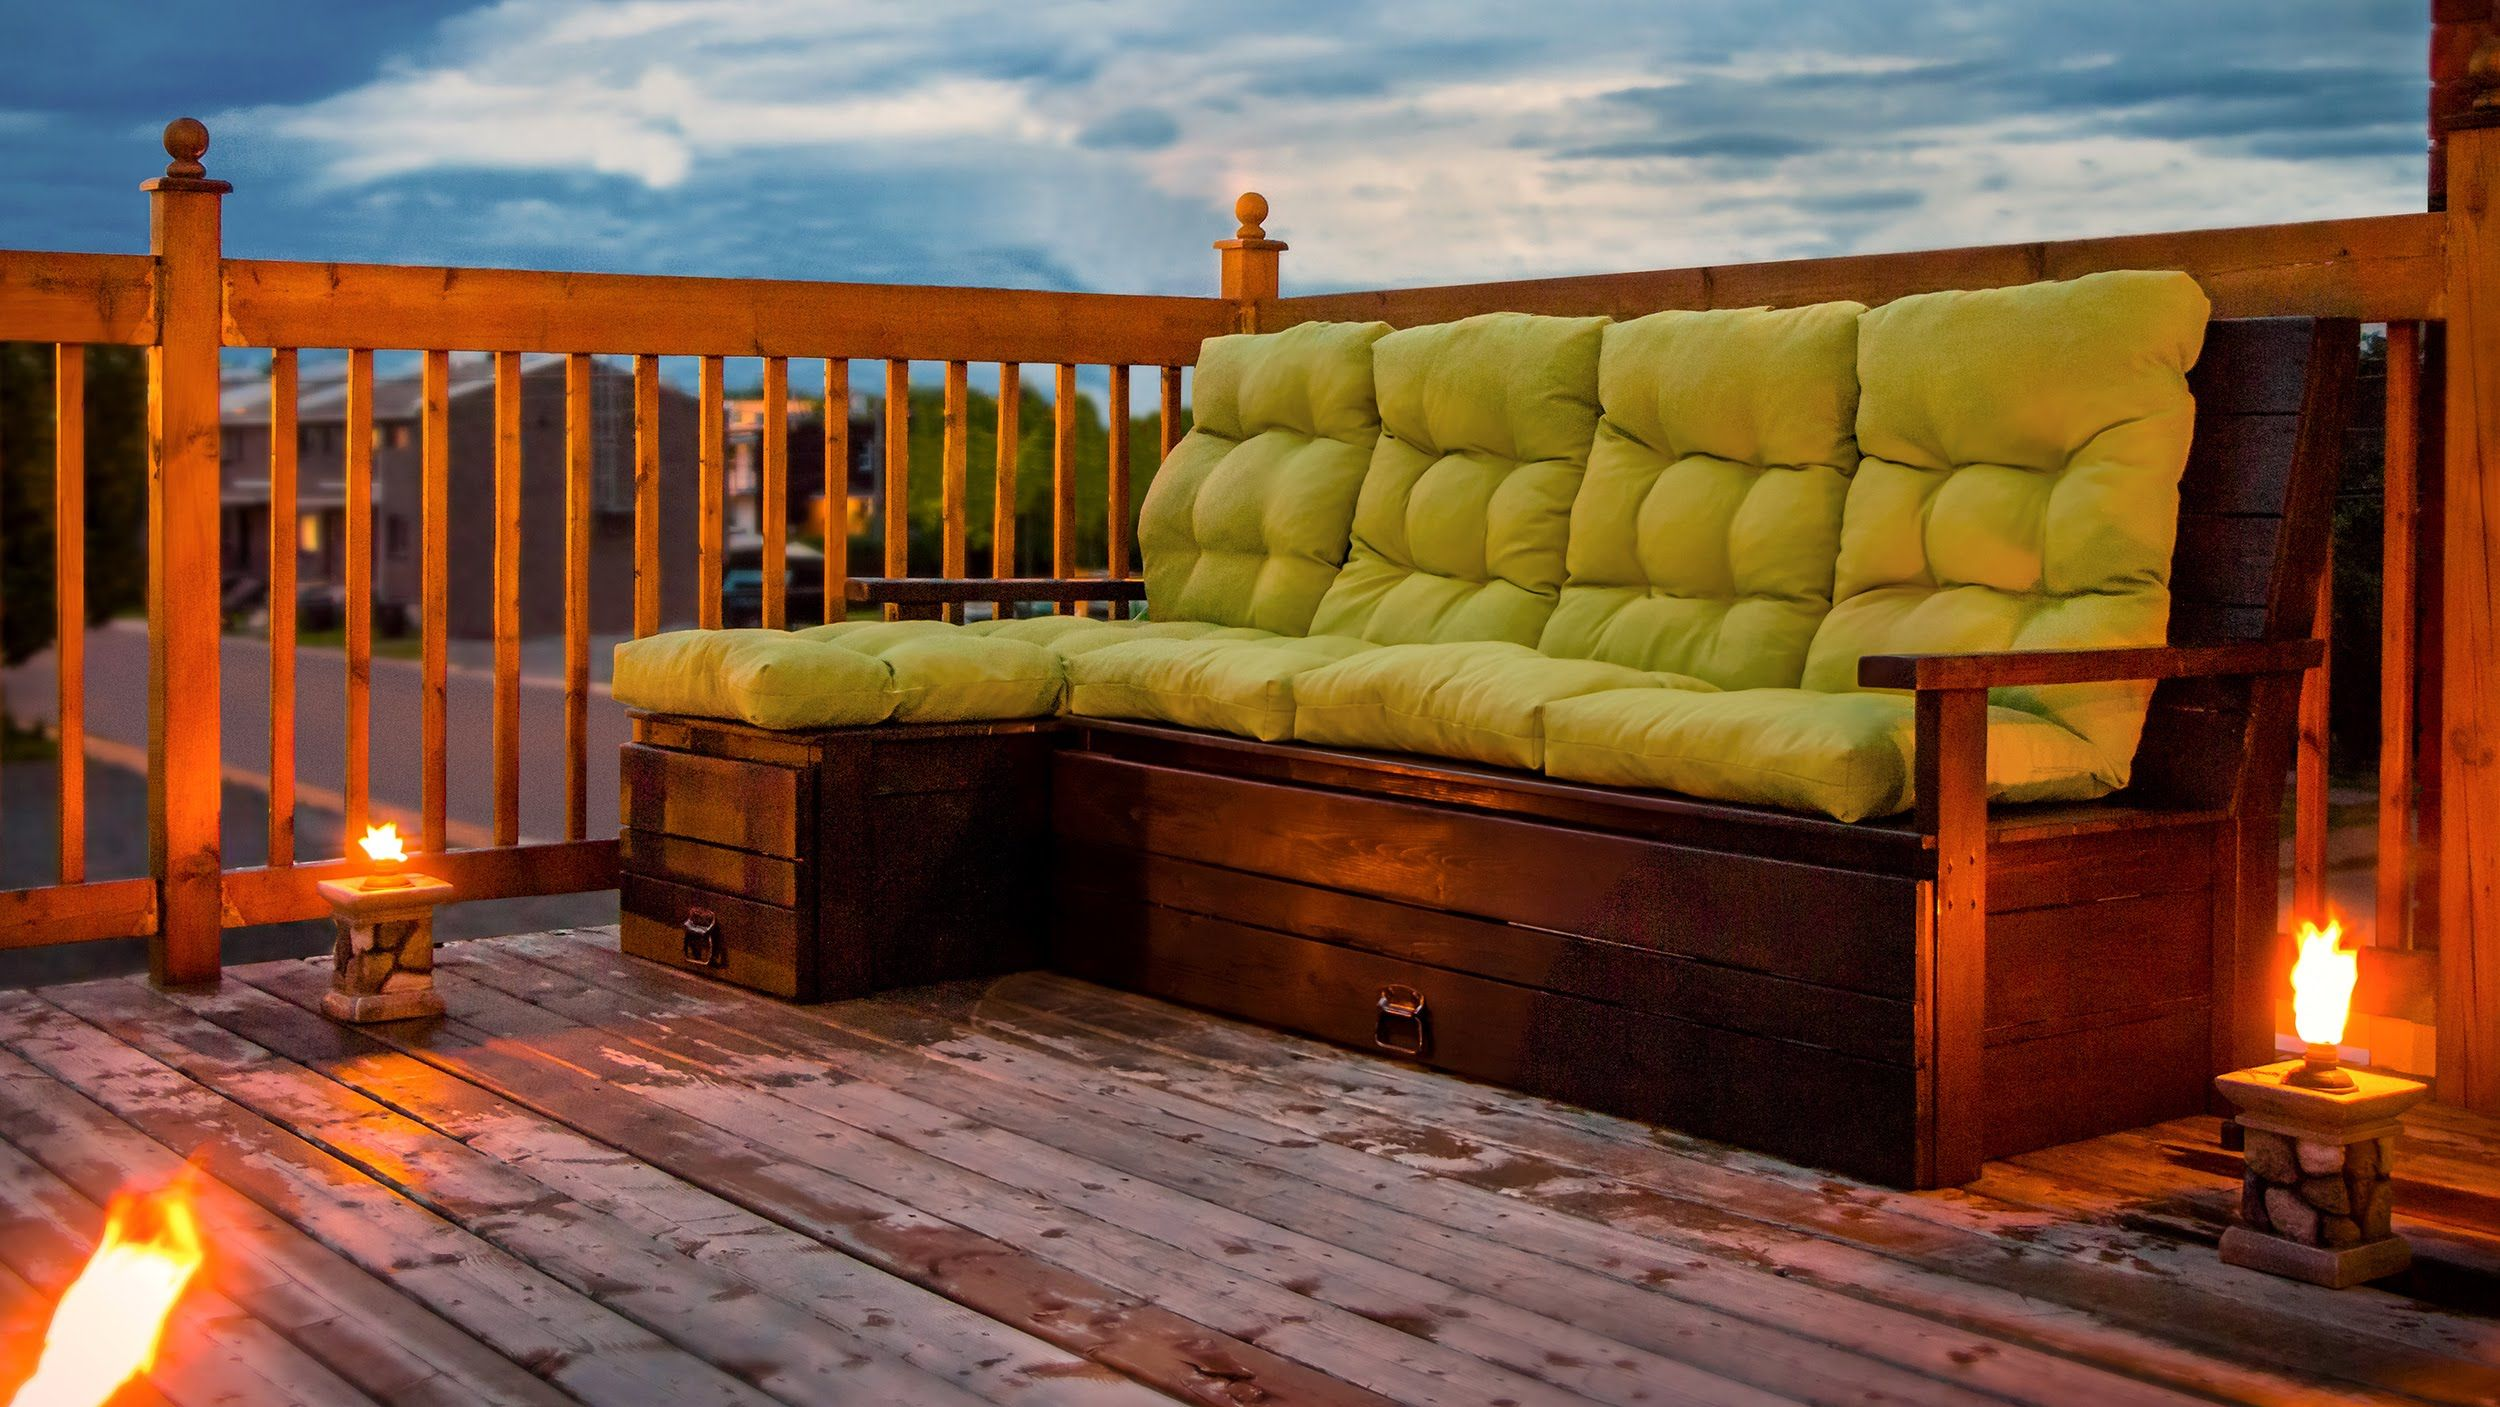 DIY Outdoor Wood sectional sofa with storage - Construction divan